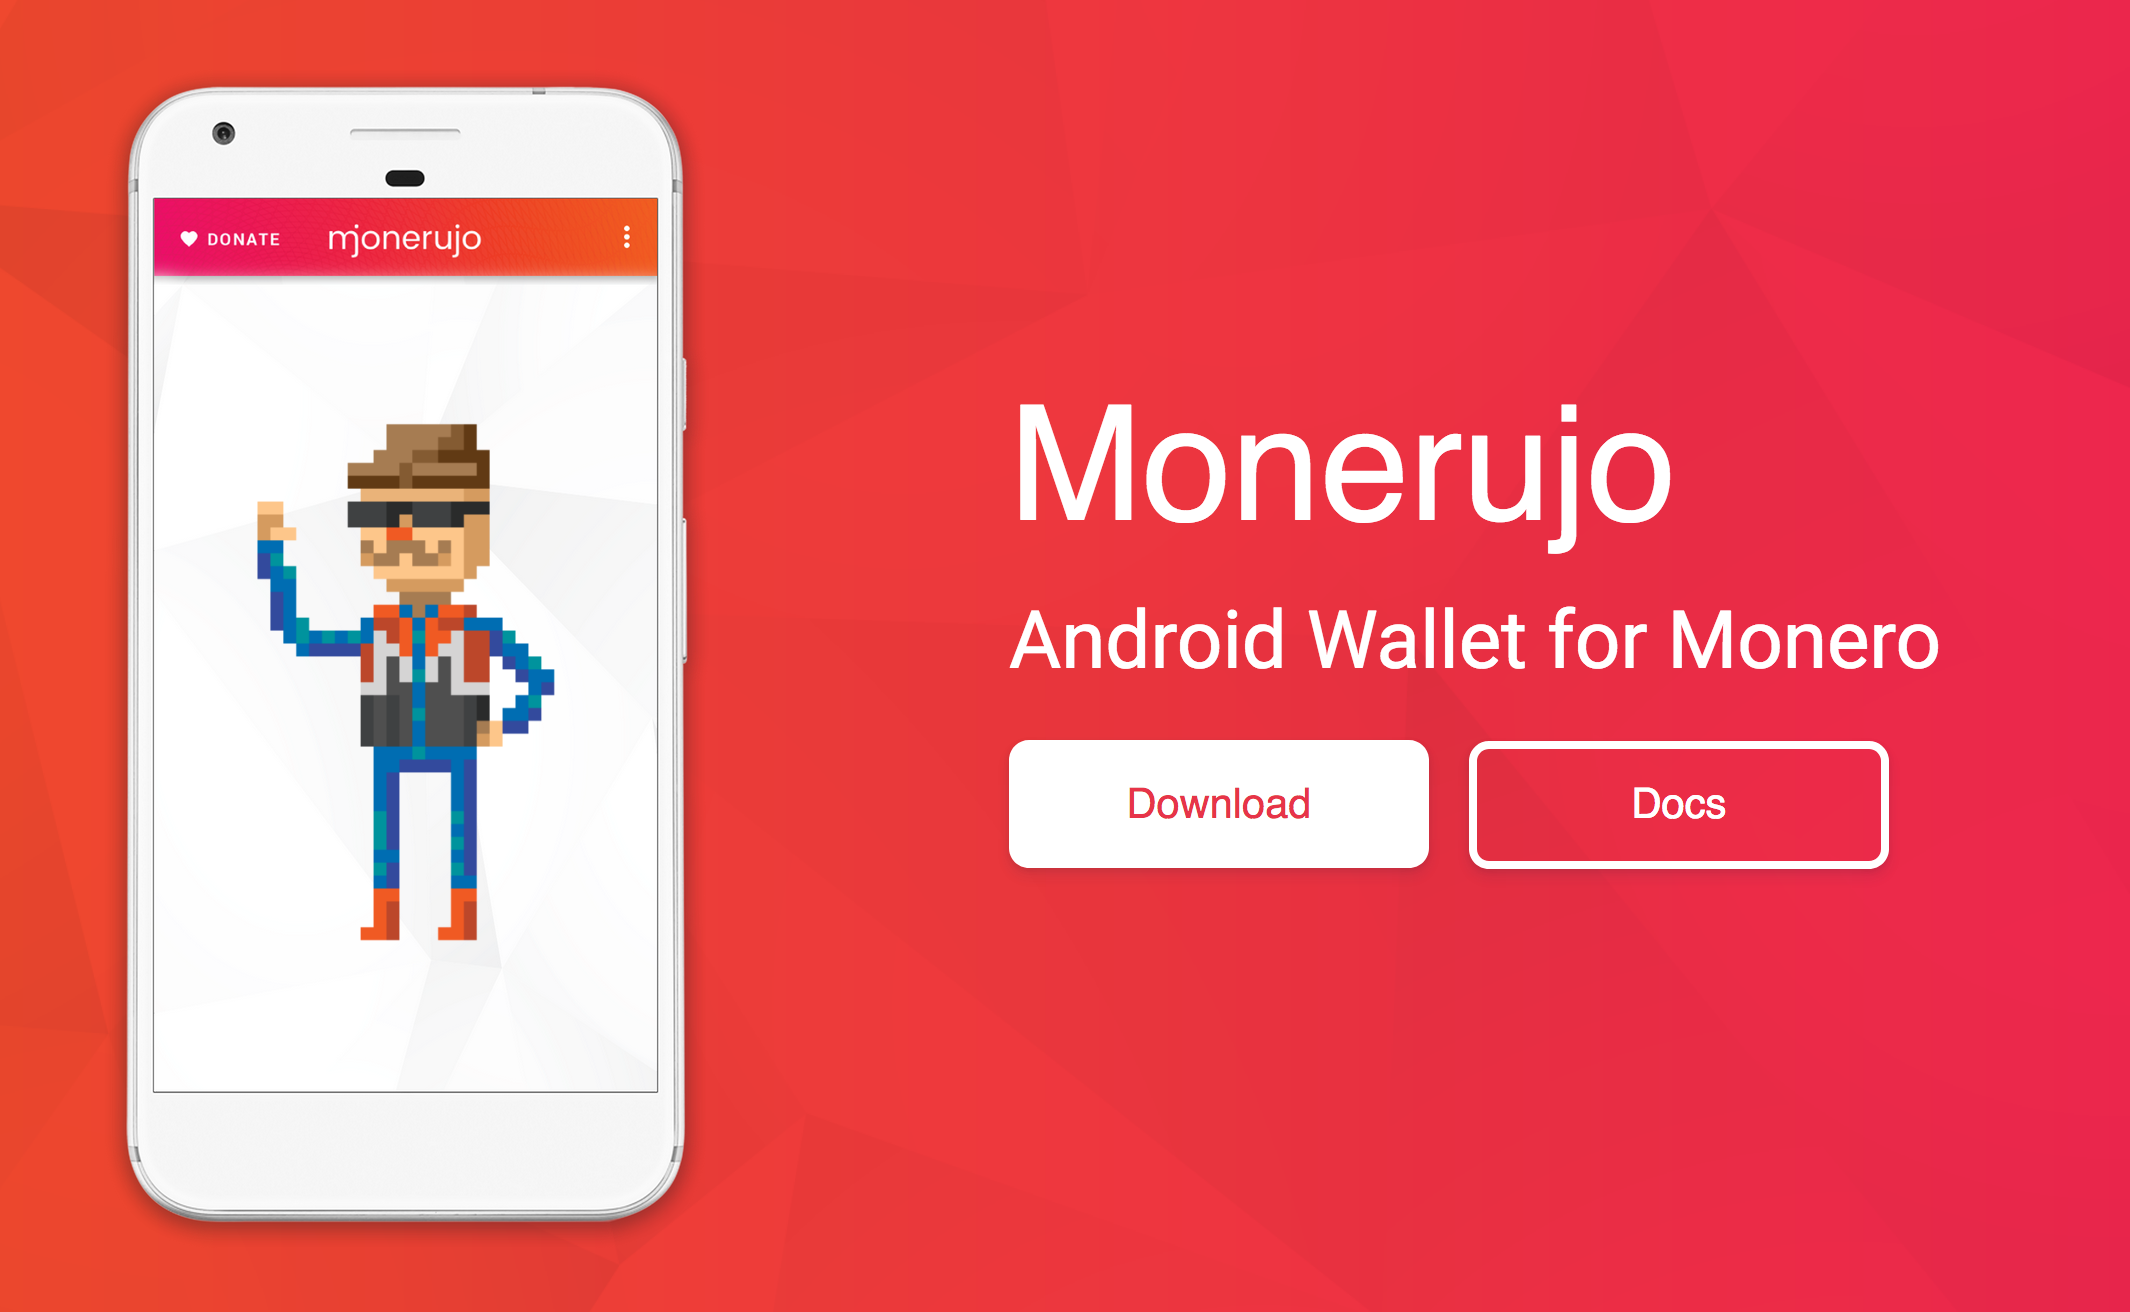 Check it out! - The project turned into reality as Monerujo.io but with another design in mind.